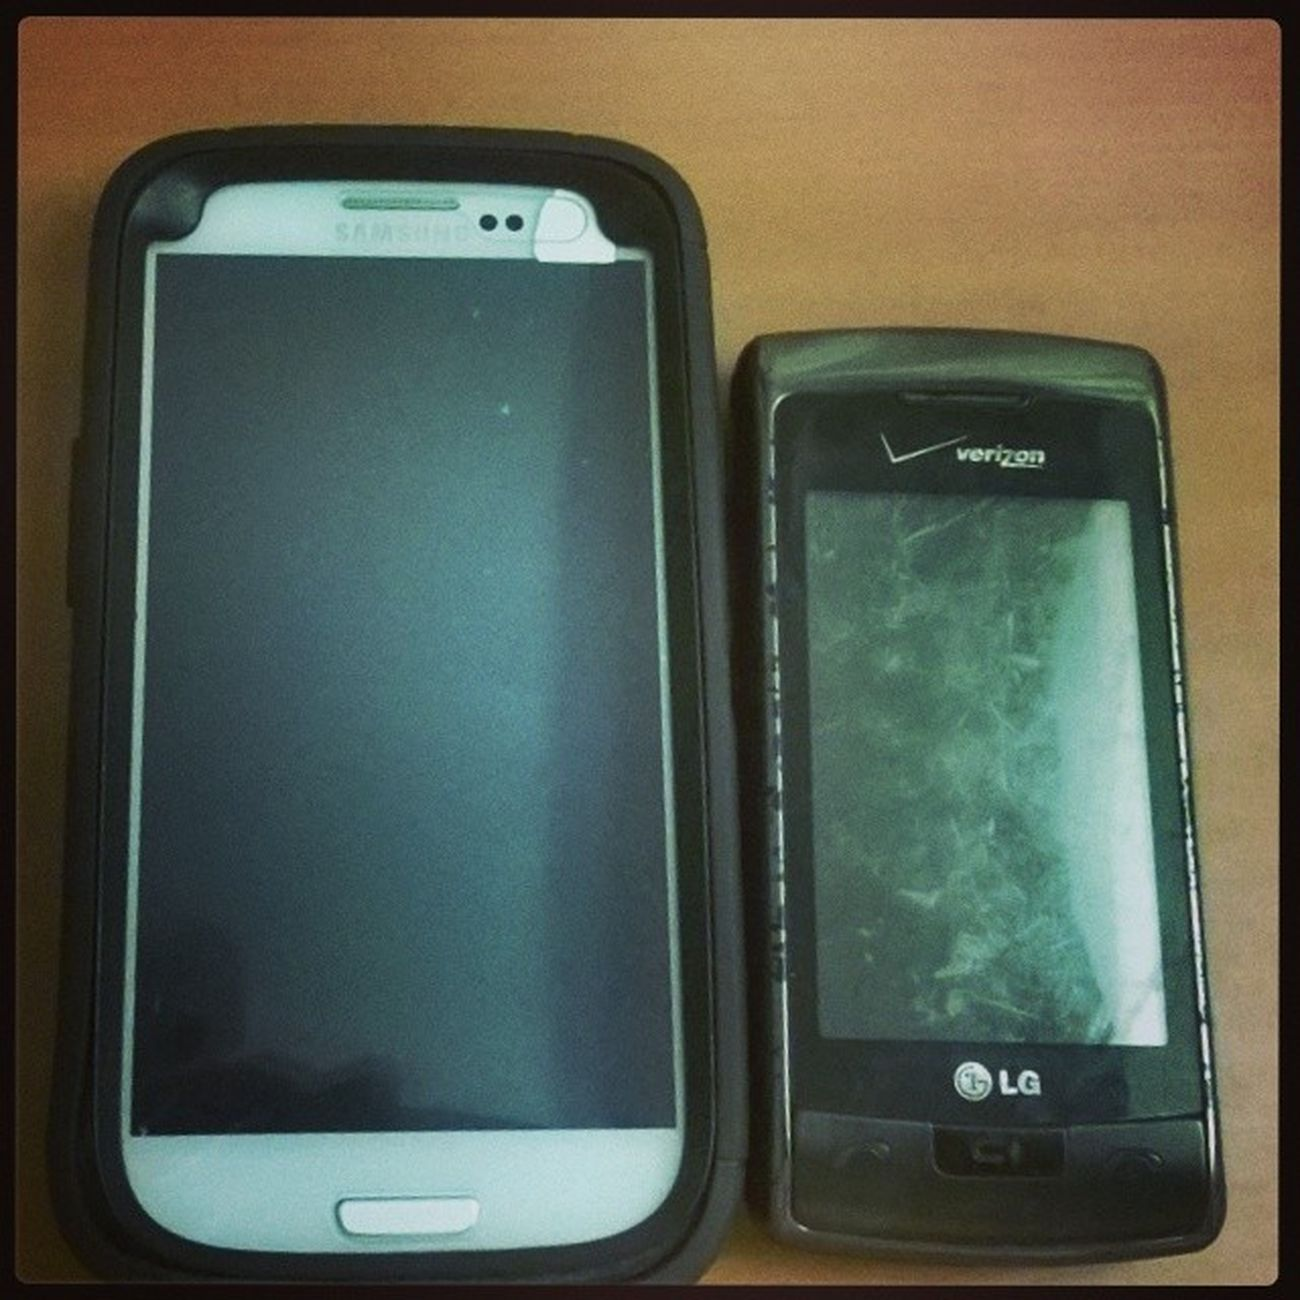 My SGS3 & my LG Envy 9800. What a difference! The Envy was considered big in ir day. Instapic Instadaily Instagram Instaandroid InstaLg Instaphone Android Verizon Boostmobile